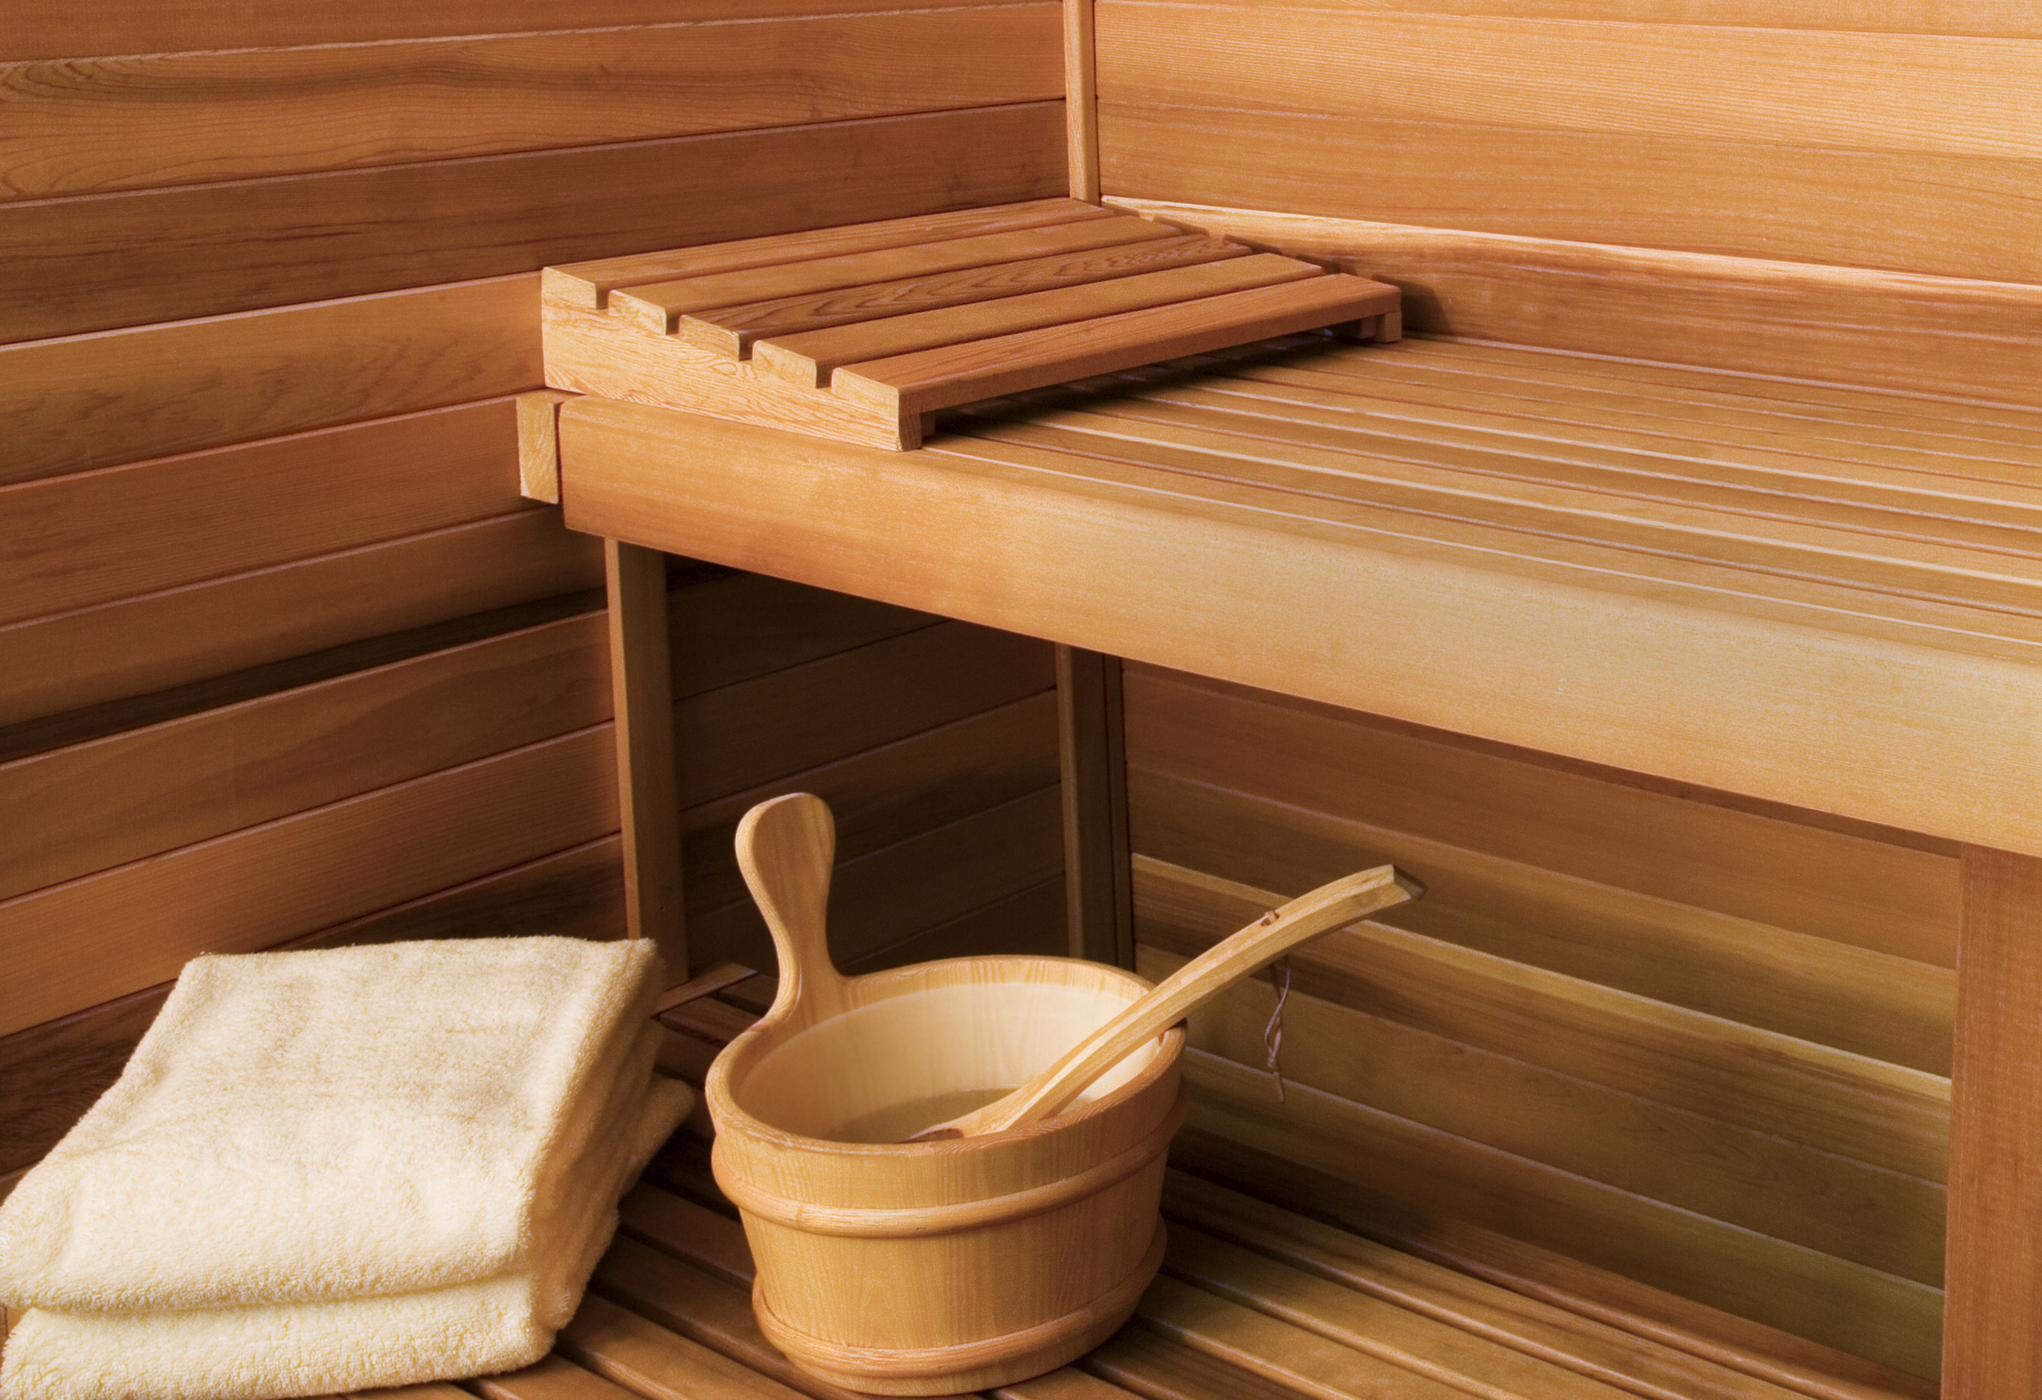 Close-up shot of inside of sauna showing bench, towels and pail.